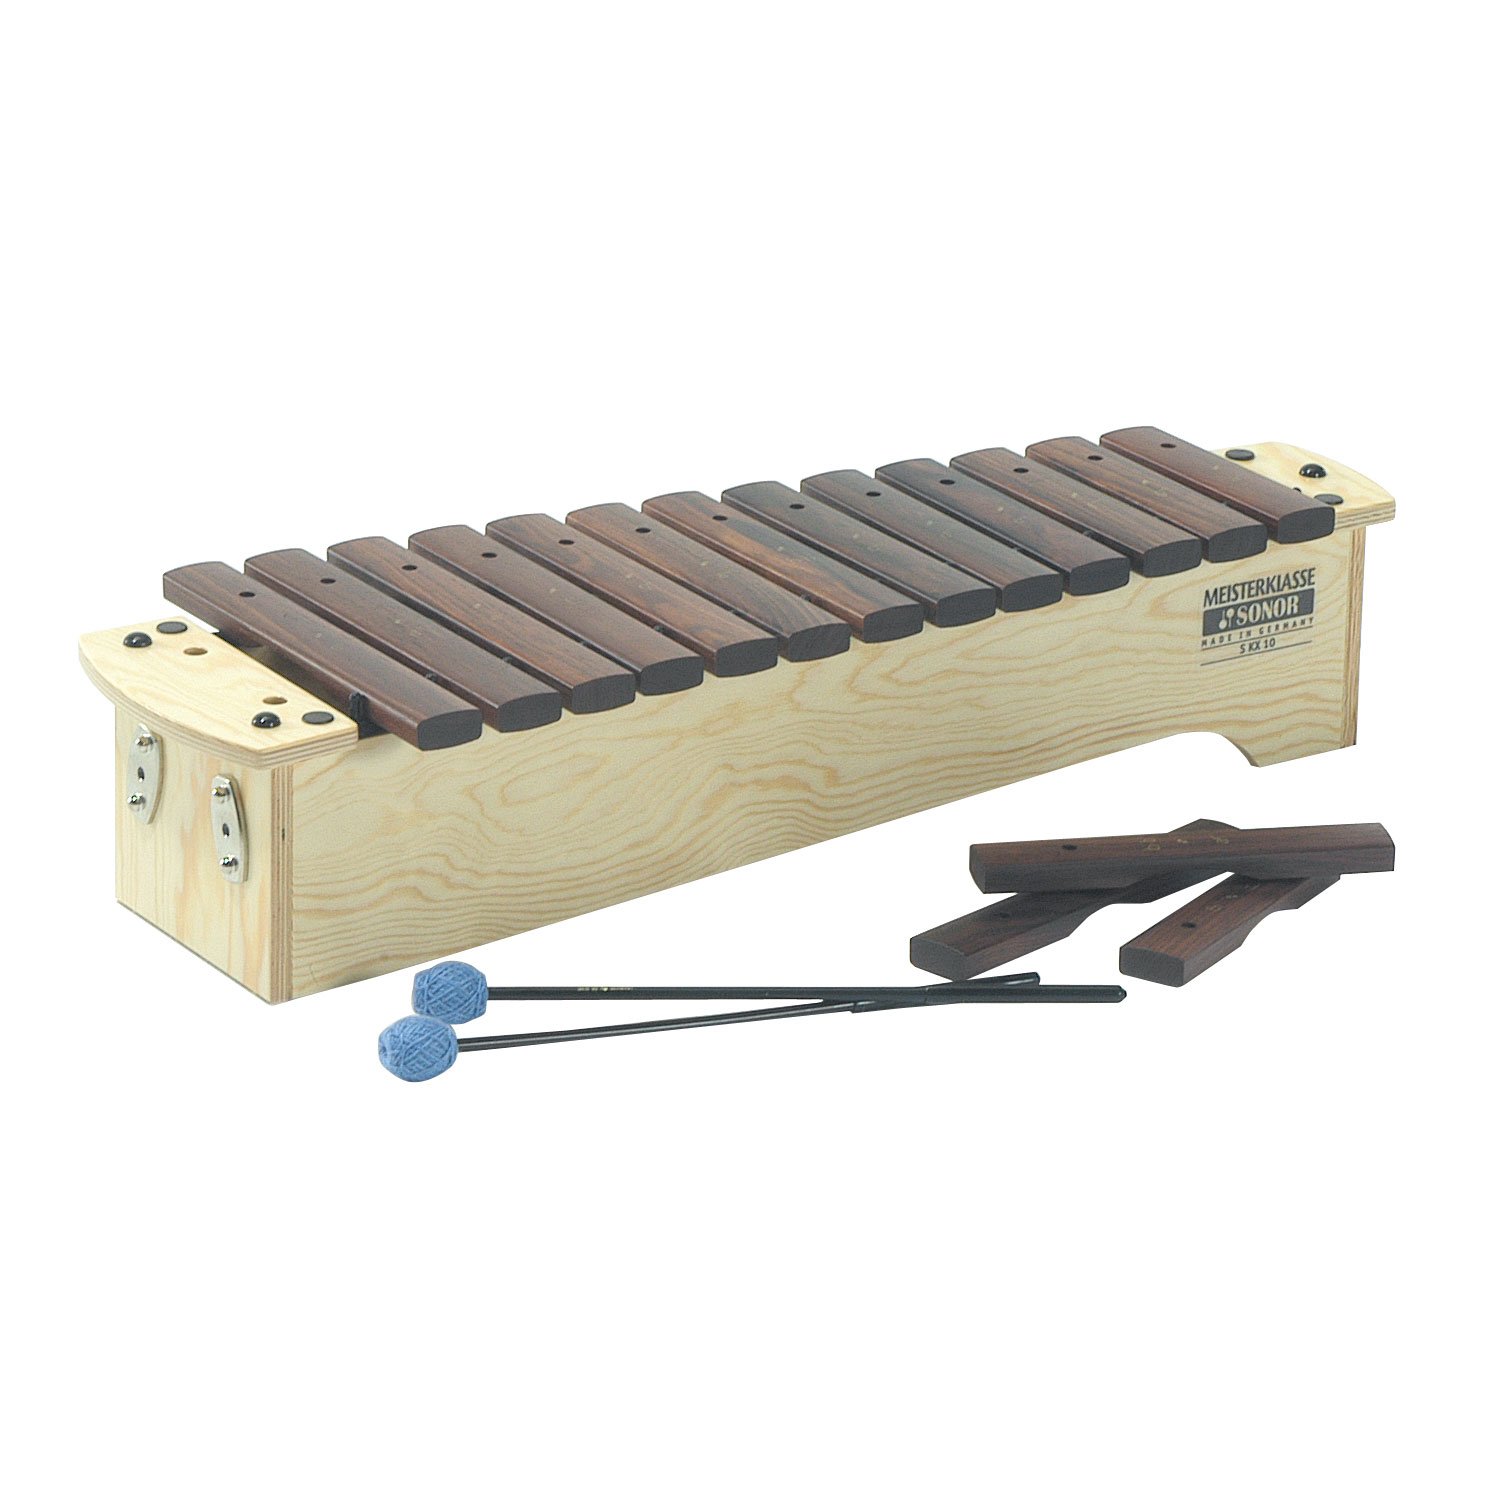 Sonor Orff Rosewood Soprano Diatonic Xylophone